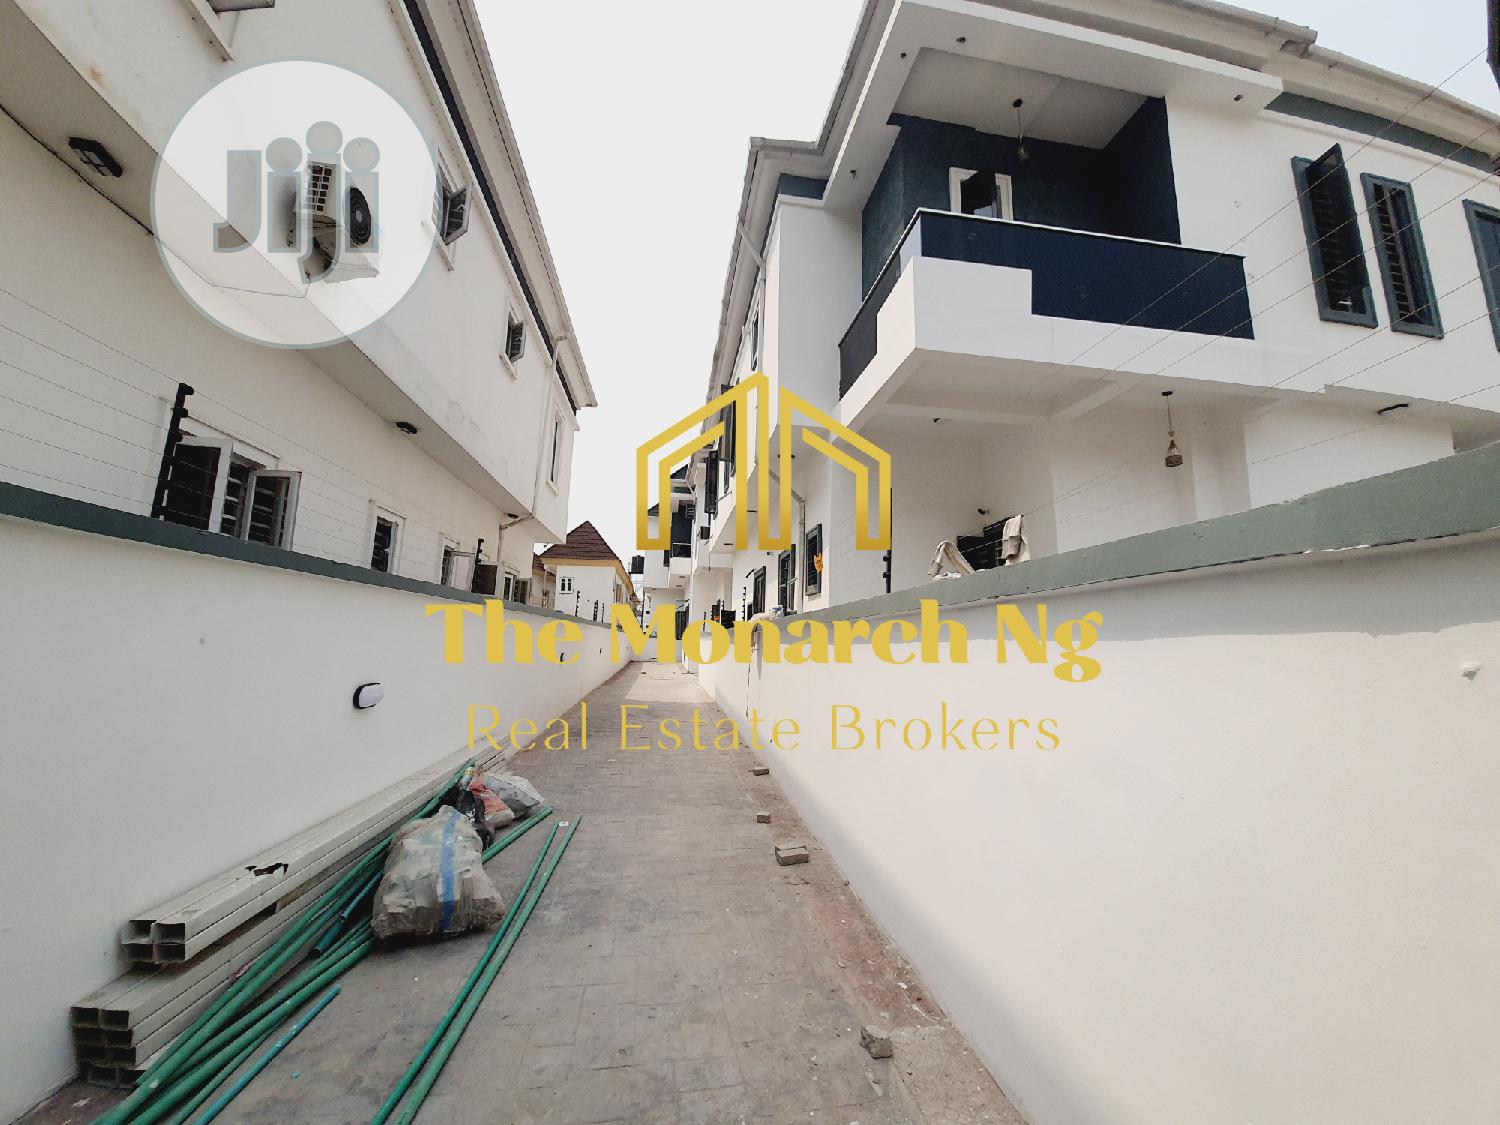 5 Bedrooms Semi-Detached Duplex House and Apartment (Home)